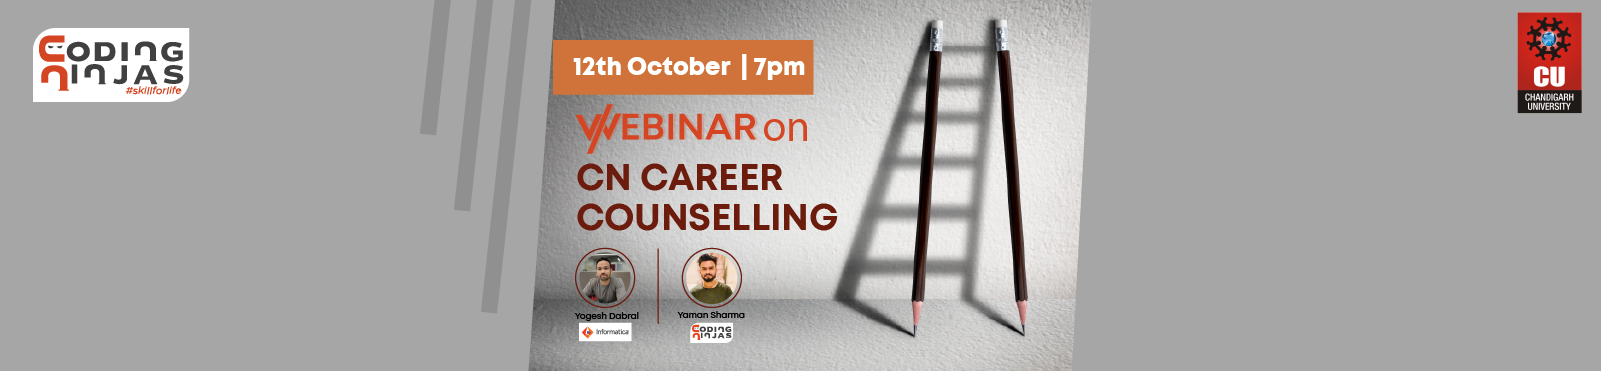 CN Career Counselling Webinar by Alumnus, CU